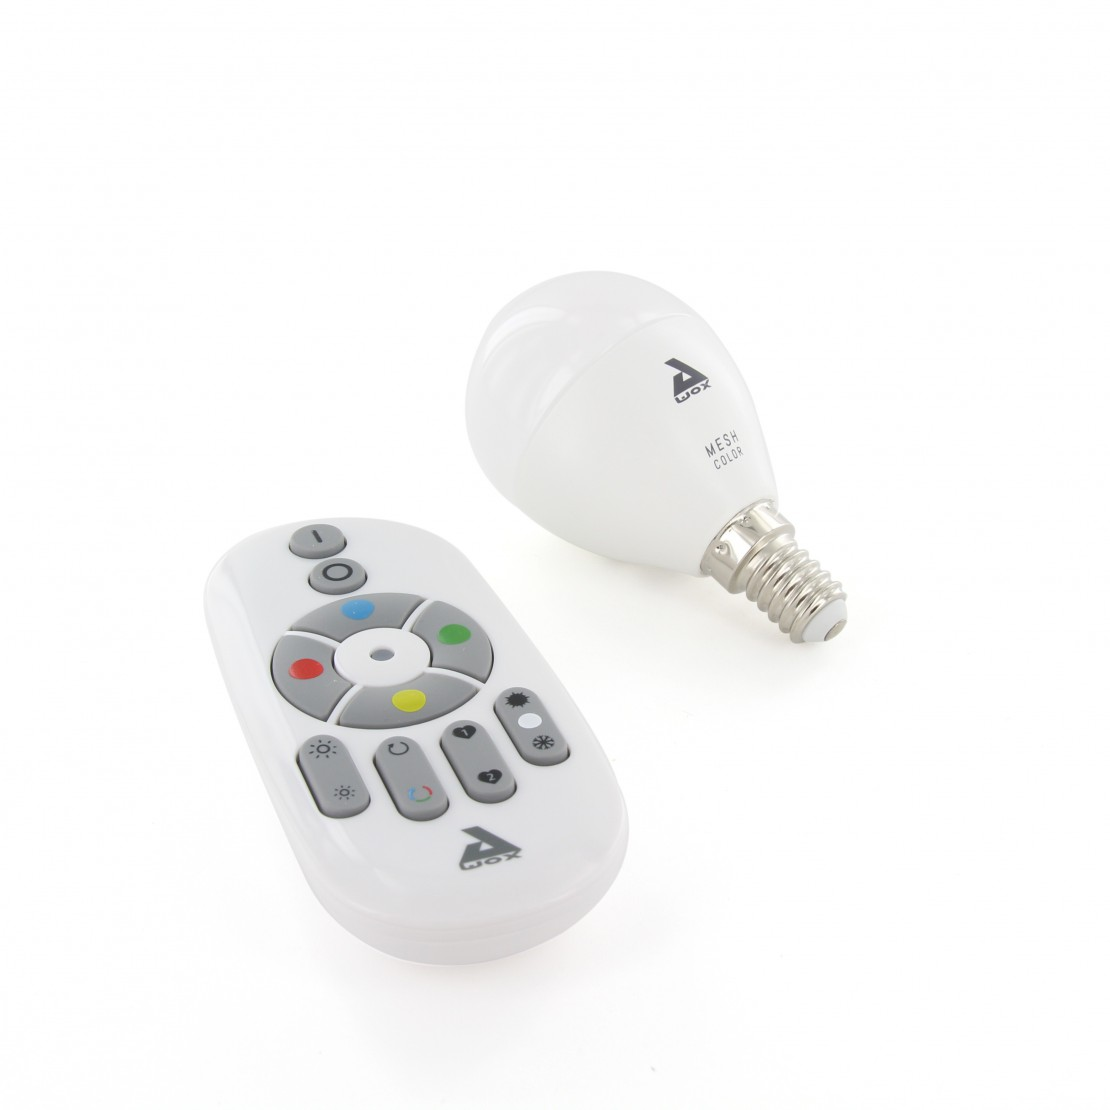 Set of colour E14 Bluetooth Mesh bulb and remote control